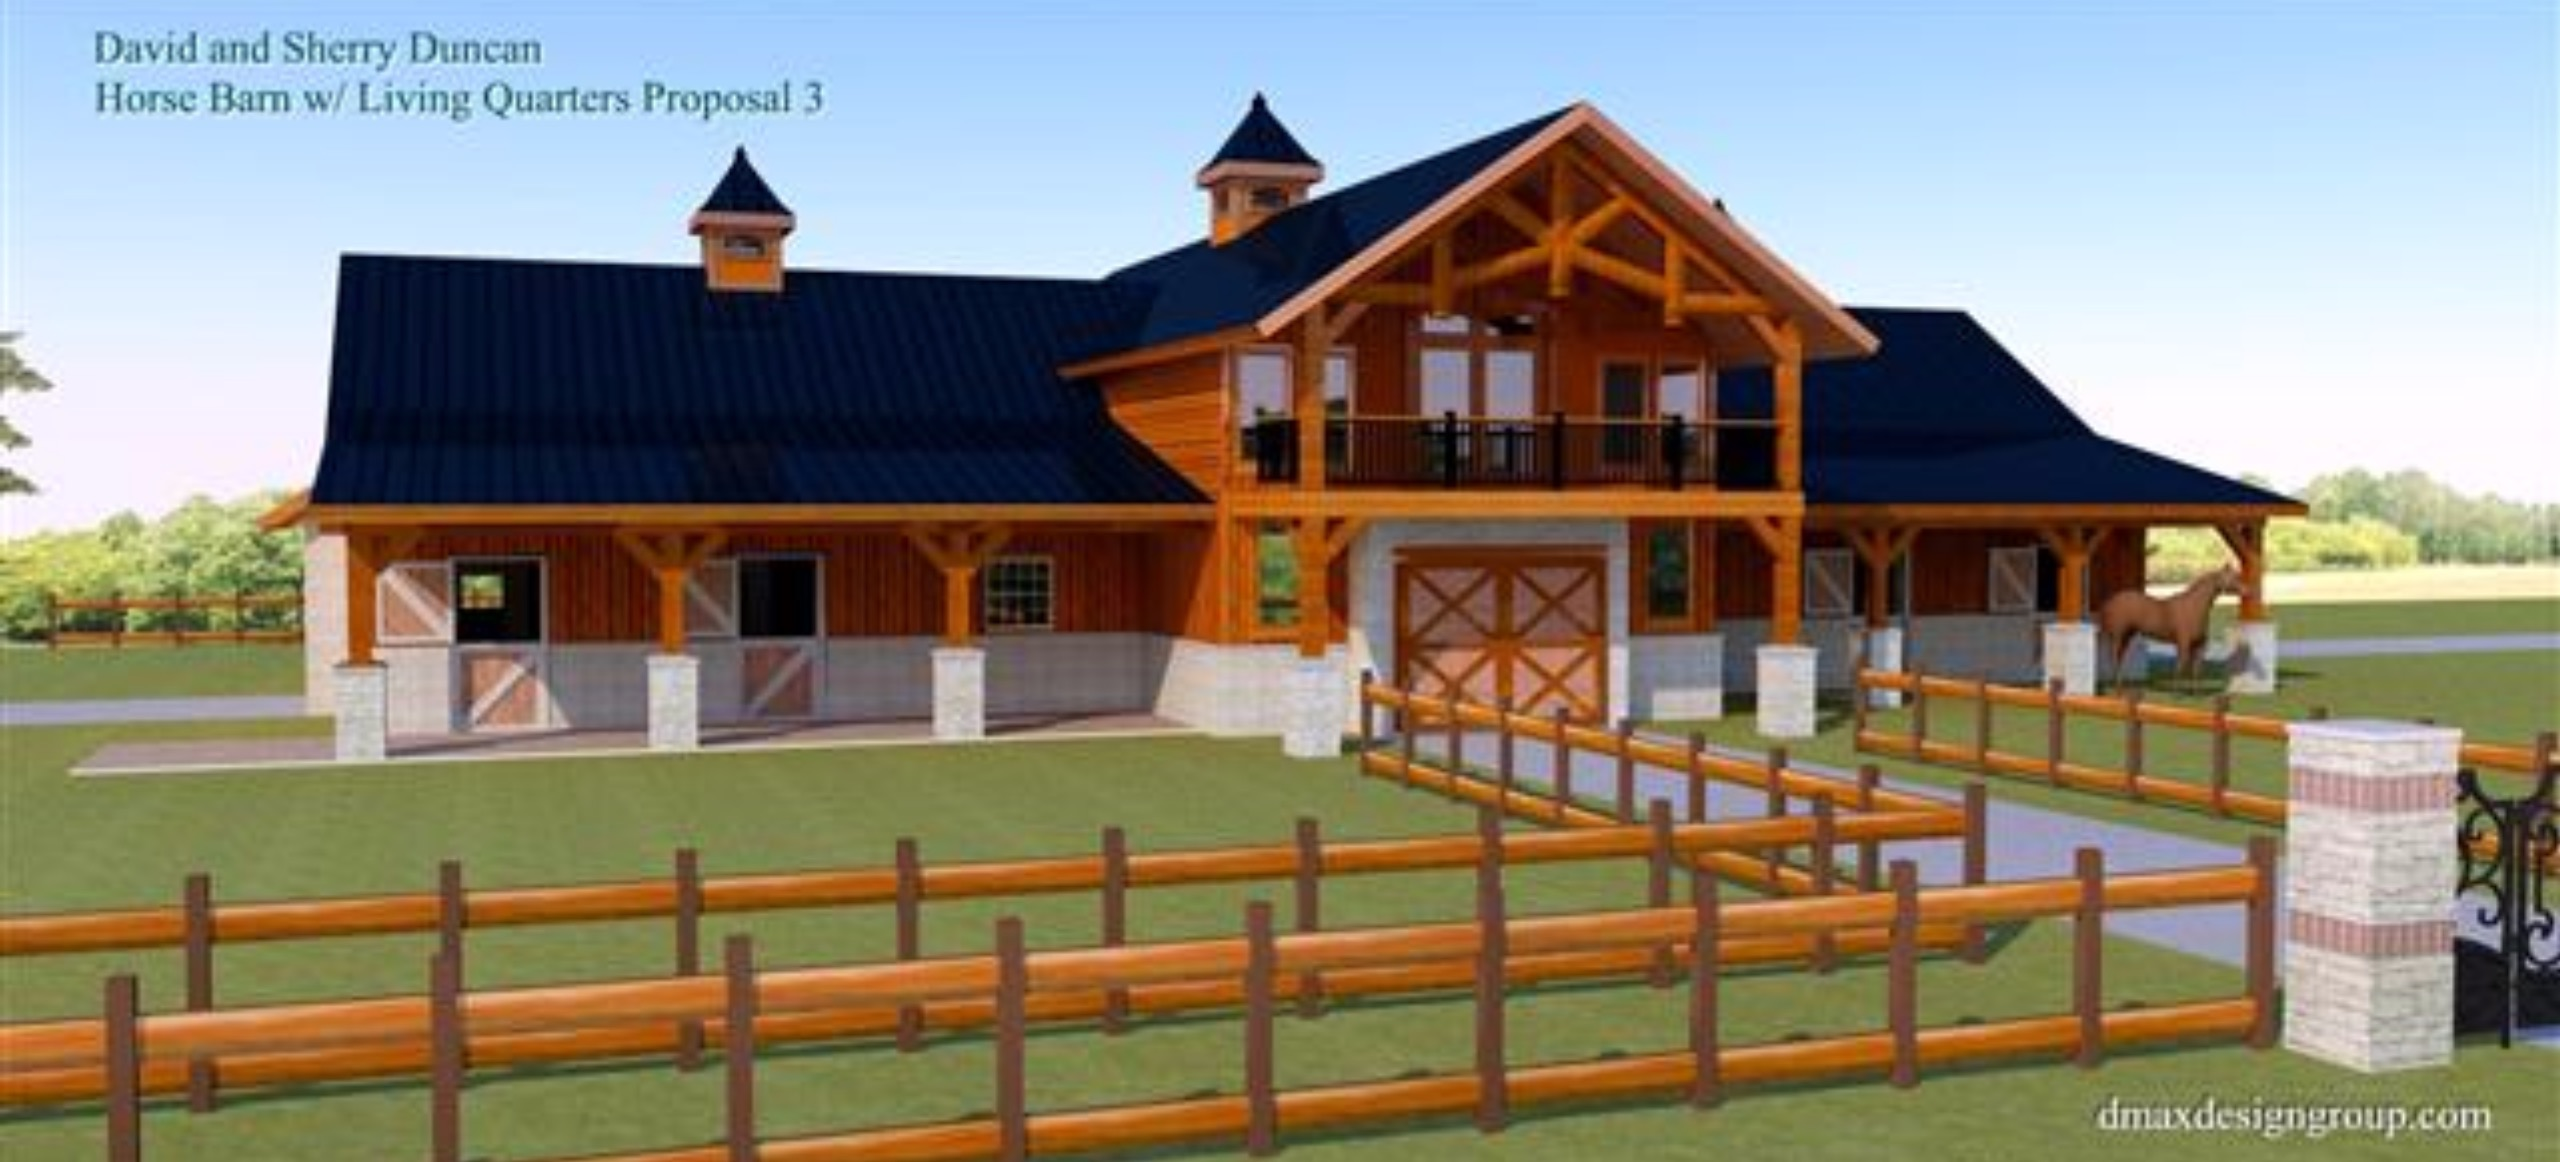 Barns and buildings quality barns and buildings horse for Barn living floor plans